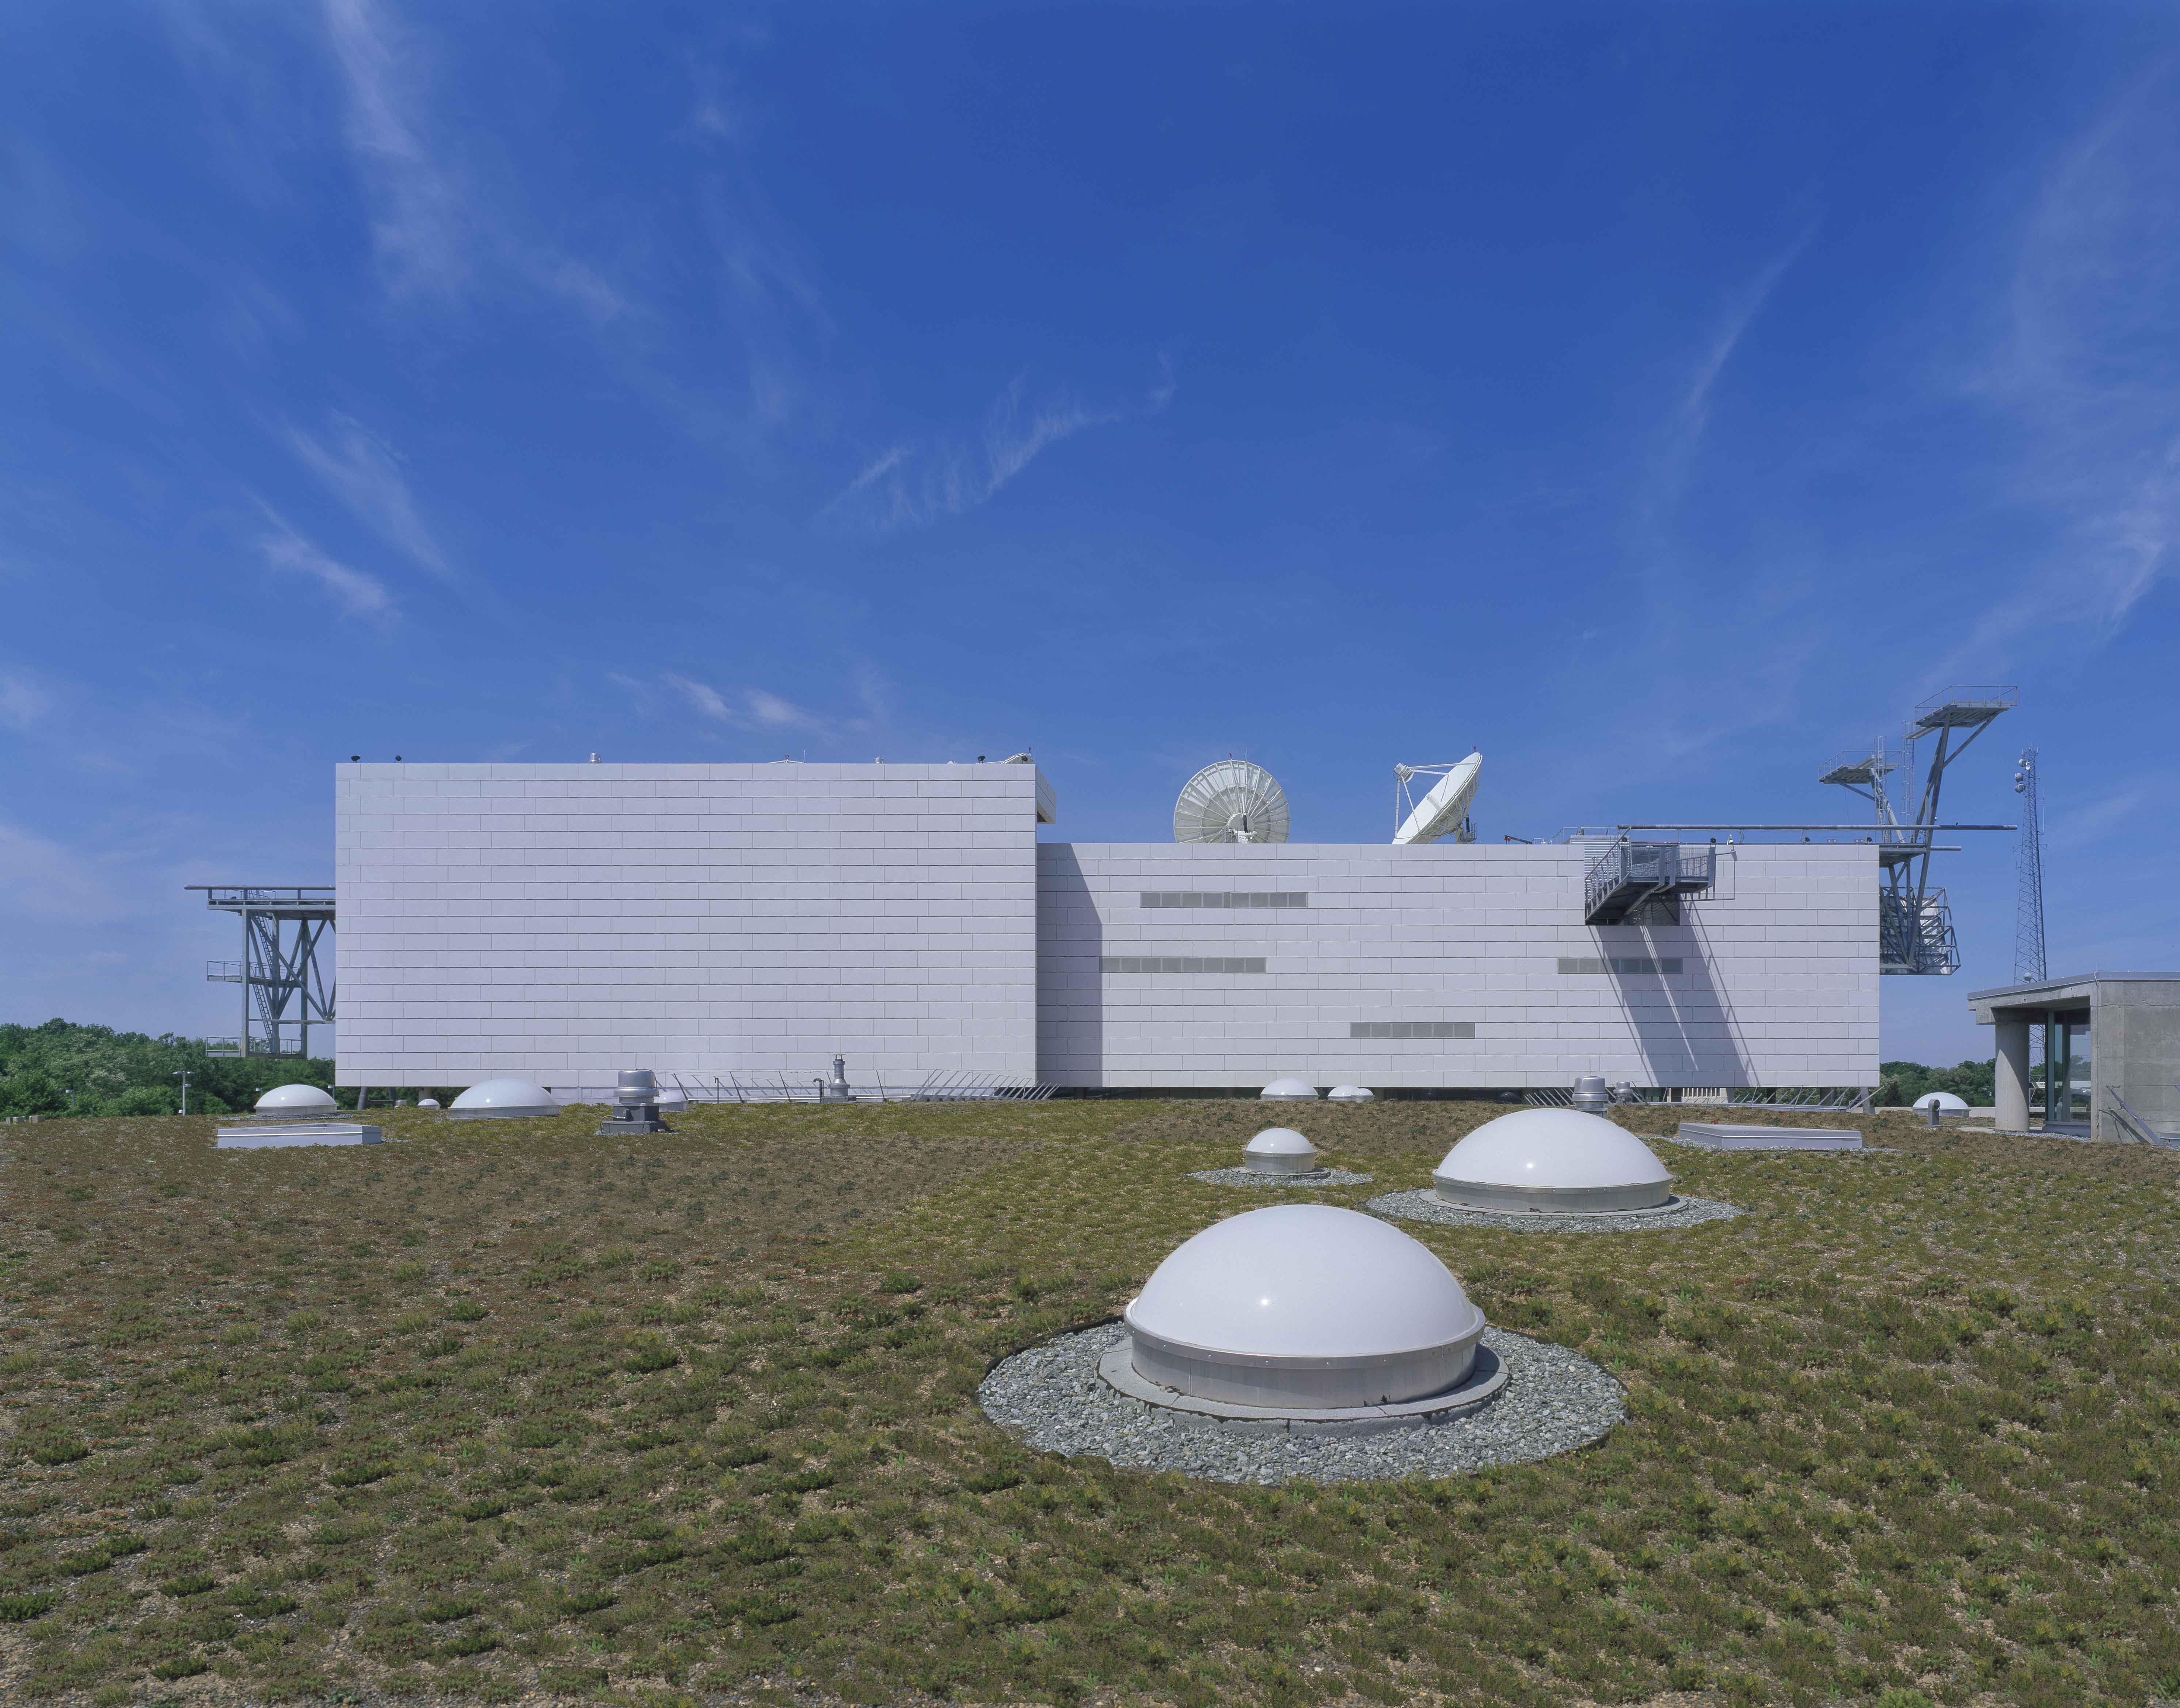 NOAA Satellite Operations Center